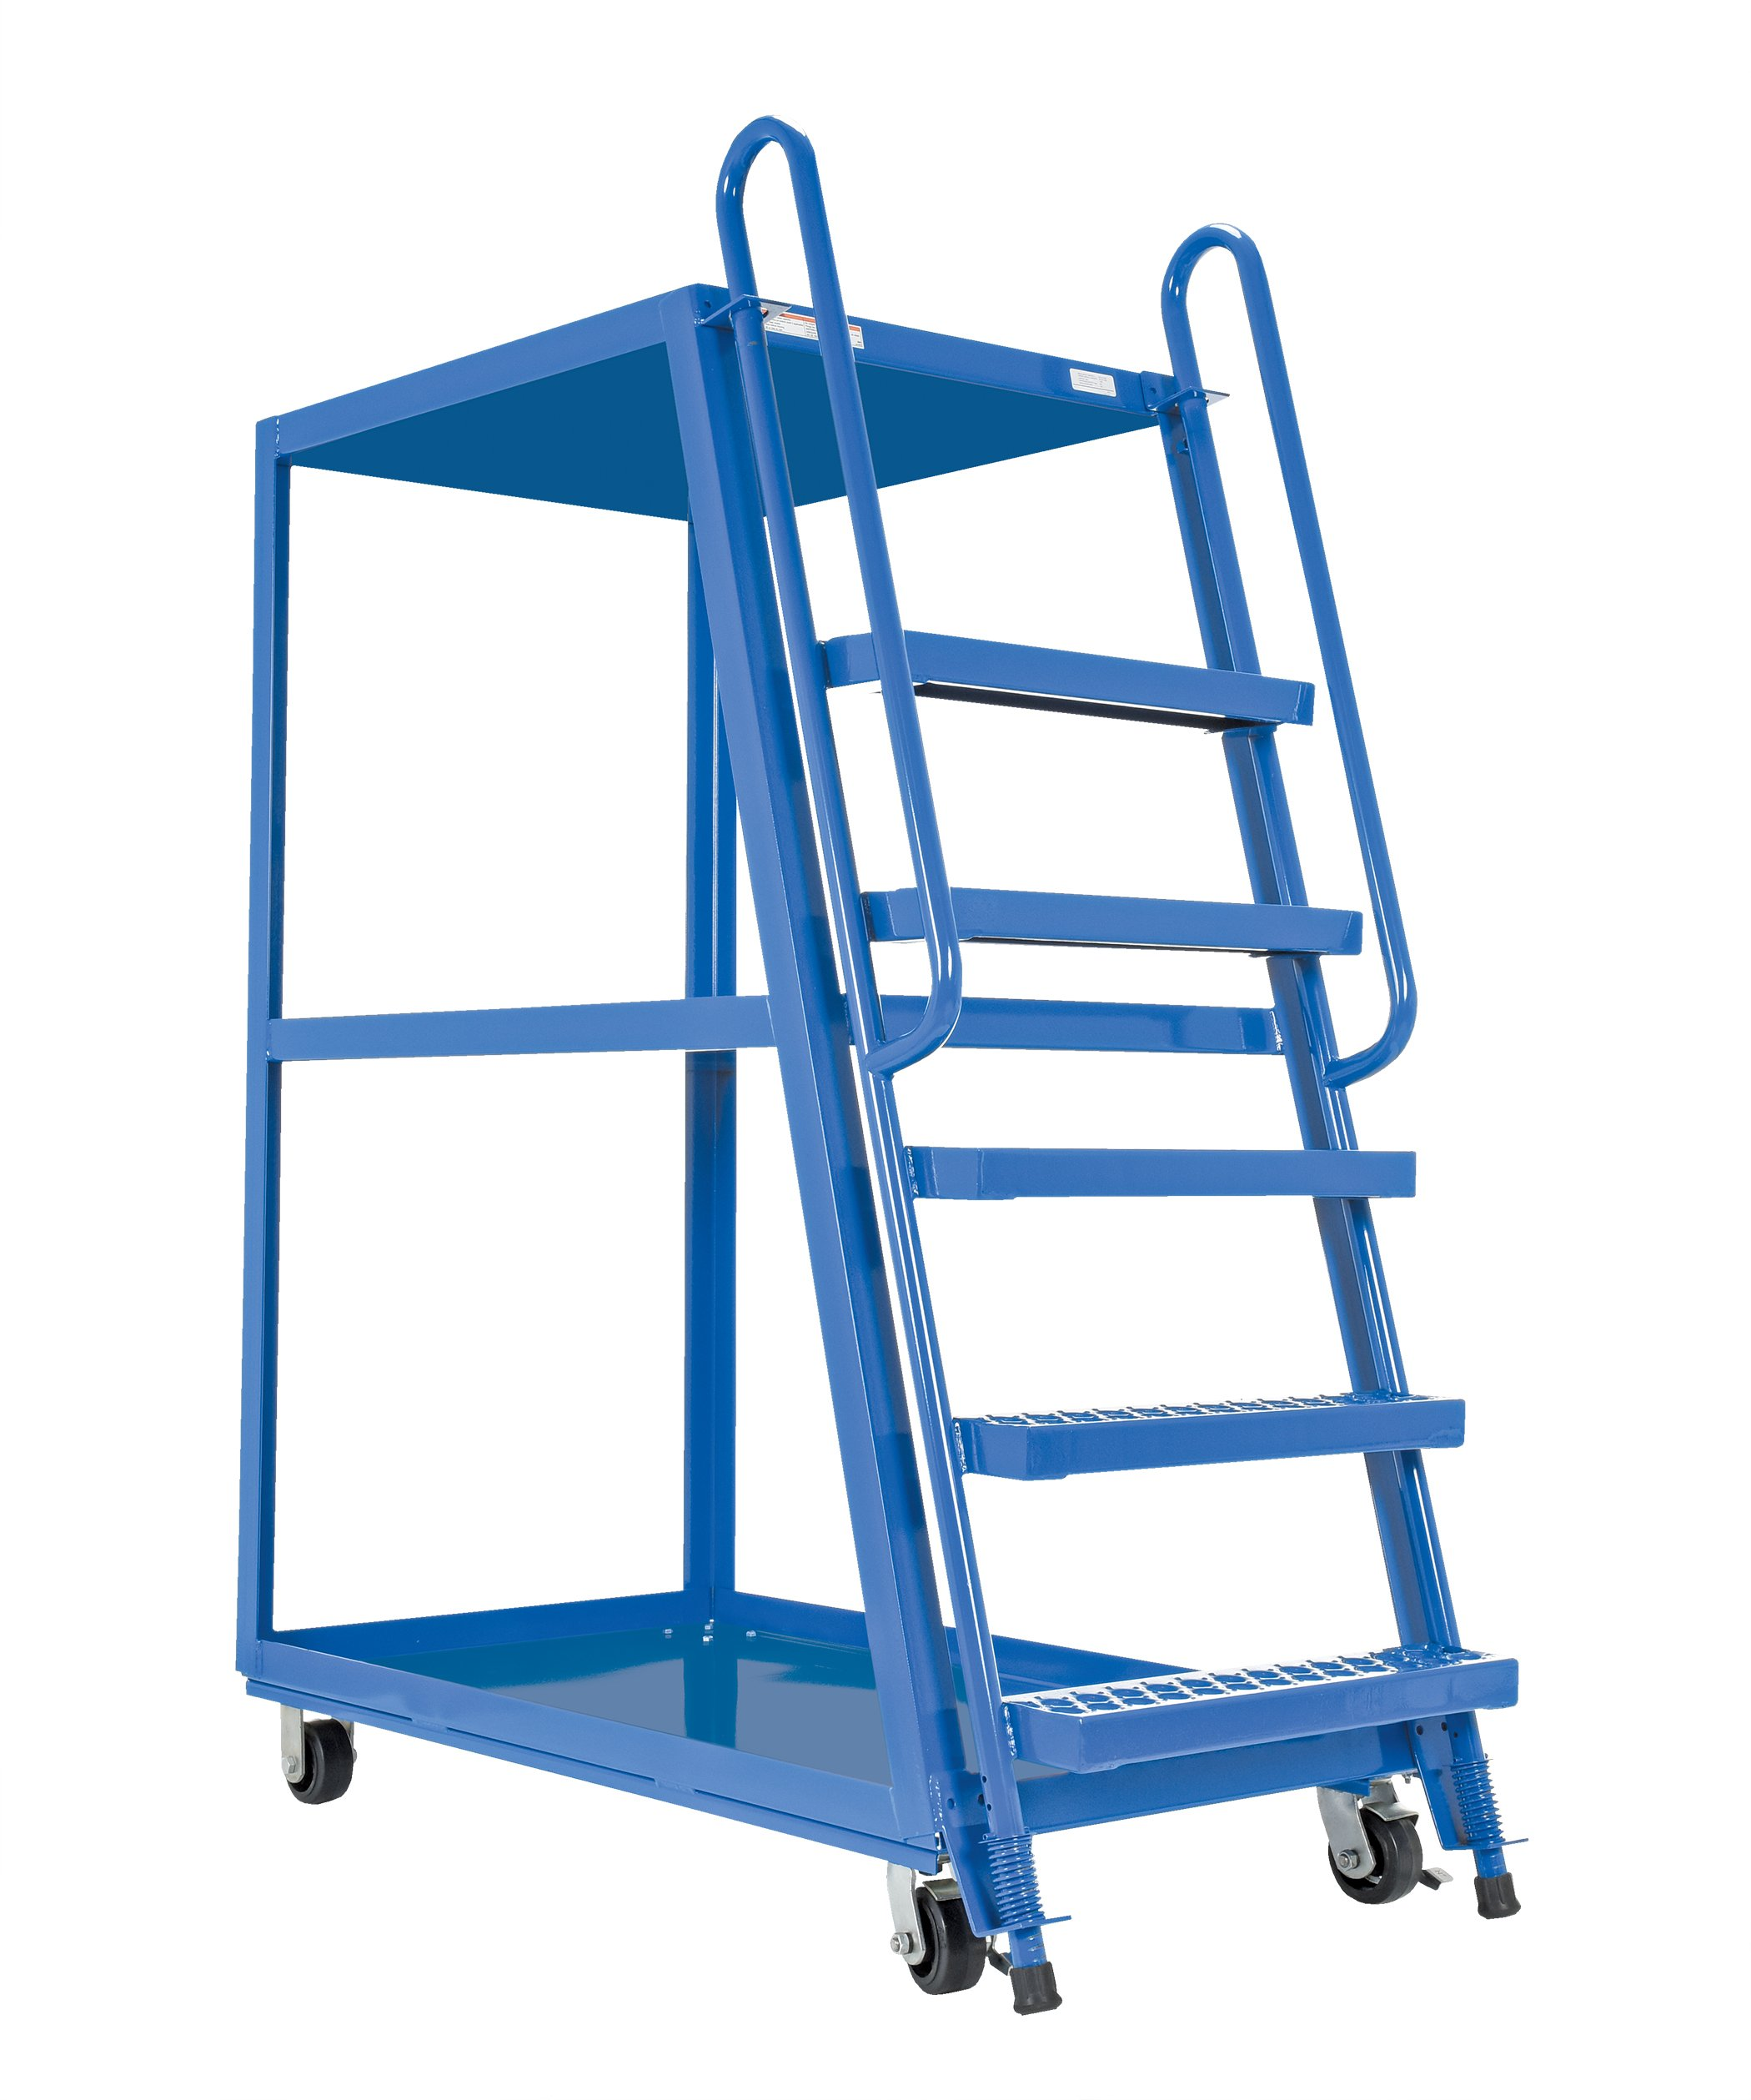 Vestil SPS-HF-2852-6MR Rubber-on-Steel High Frame Cart, 27.5'' x 51''